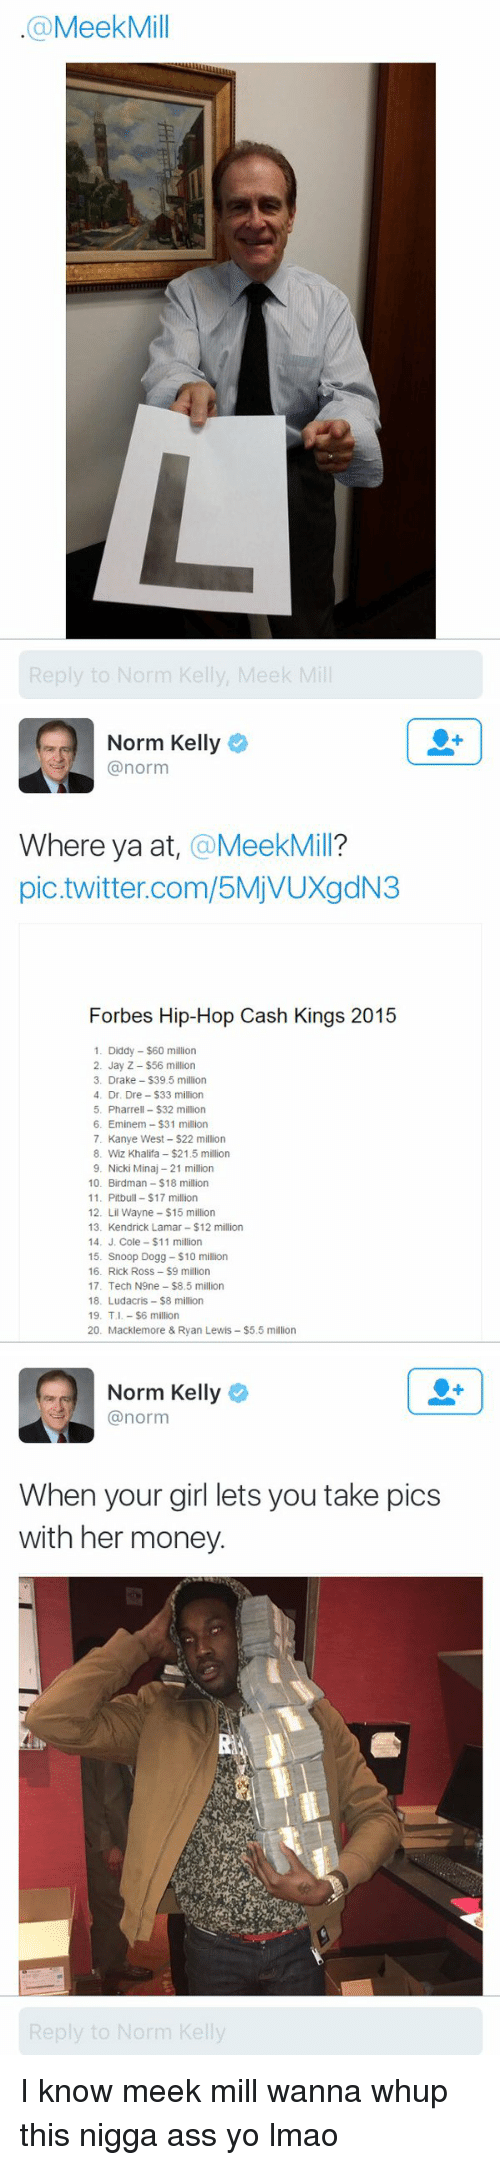 Ass, Birdman, and Blackpeopletwitter: @Meek Mill  Reply to Norm Kelly, Meek Mill   Norm Kelly  (a norm  Where ya at  MeekMill  pictwitter.com/5MiVUXgdN3  Forbes Hip-Hop Cash Kings 2015  1. Diddy -$60 million  2. Jay Z-$56 million  3. Drake $39.5 million  4. Dr. Dre -$33 million  5. Pharrell -$32 million  6. Eminem $31 million  7. Kanye West $22 million  8. Wiz Khalifa -$21.5 million  9. Nicki Minaj 21 million  10. Birdman $18 million  11, Pitbull $17 million  12. Lil Wayne -$15 million  13. Kendrick Lamar -$12 million  14. J. Cole -$11 million  15. Snoop Dogg -$10 million  16. Rick Ross -$9 million  17. Tech N9ne $8.5 million  18. Ludacris -$8 million  19, T  l. $6 million  20. Macklemore & Ryan Lewis -$5.5 million   Norm Kelly  @norm  When your girl lets you take pics  with her money.  Reply to Norm Kelly I know meek mill wanna whup this nigga ass yo lmao